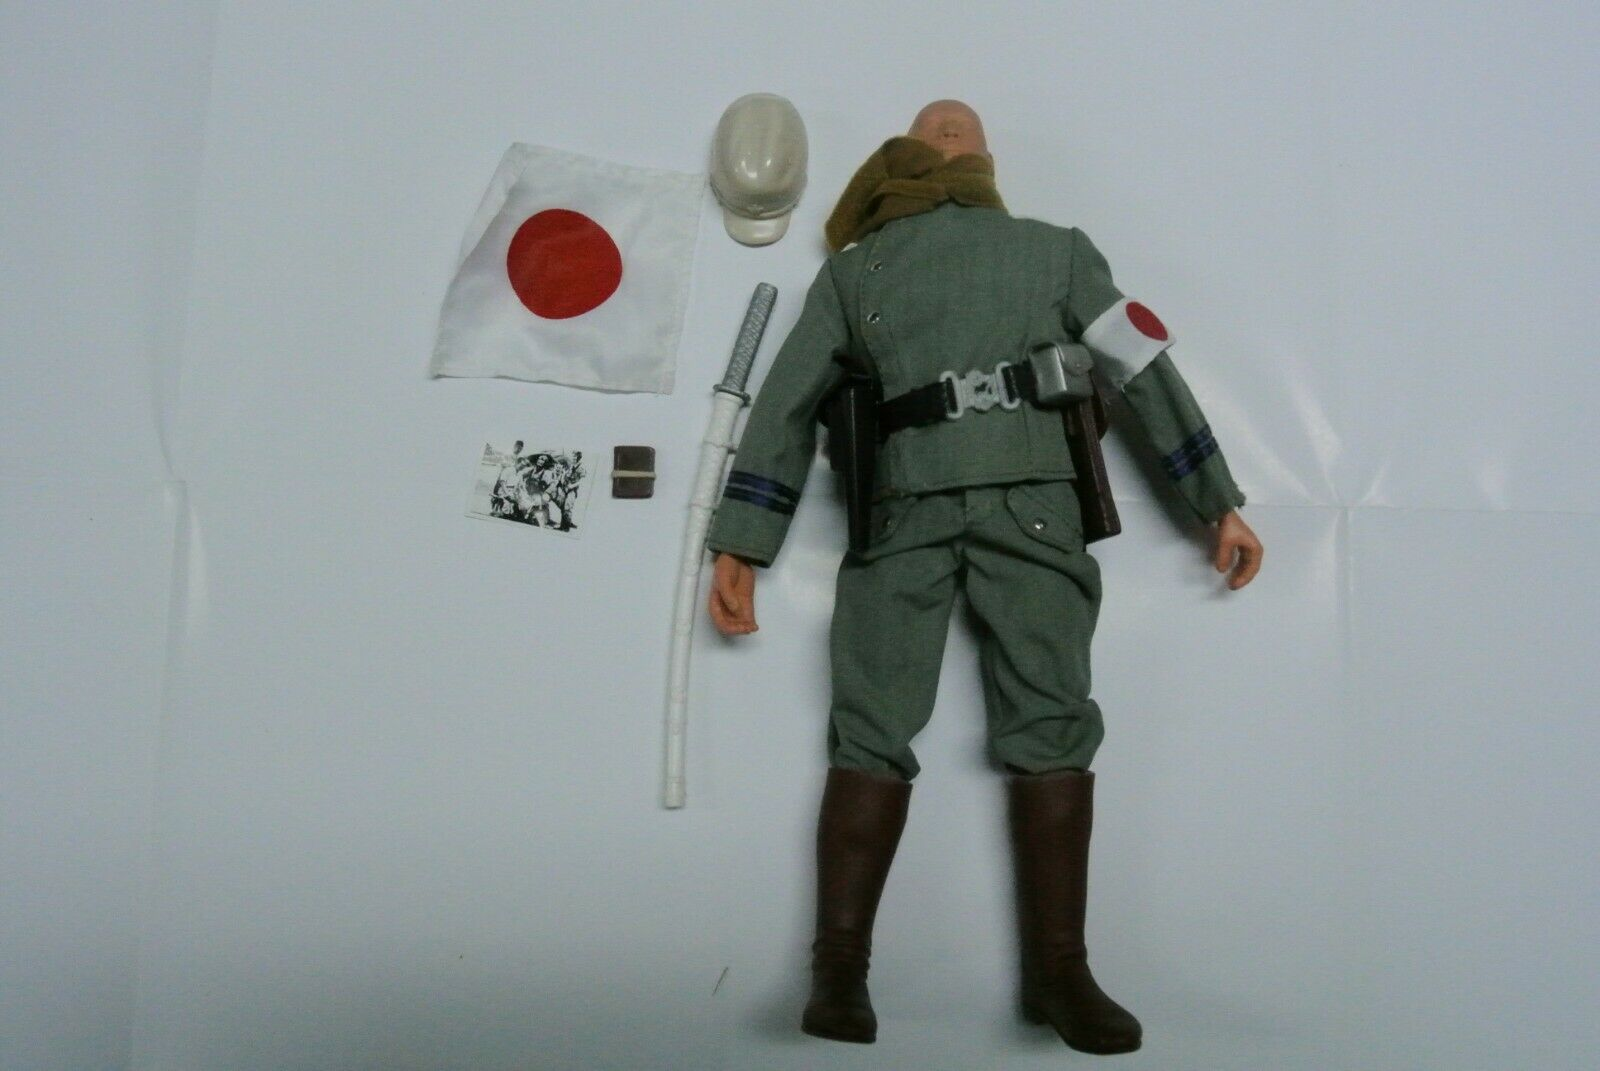 Hasbro 1 6 GI Joe JAPANESE ARMY SOLDIERS test shot predotype factory sample